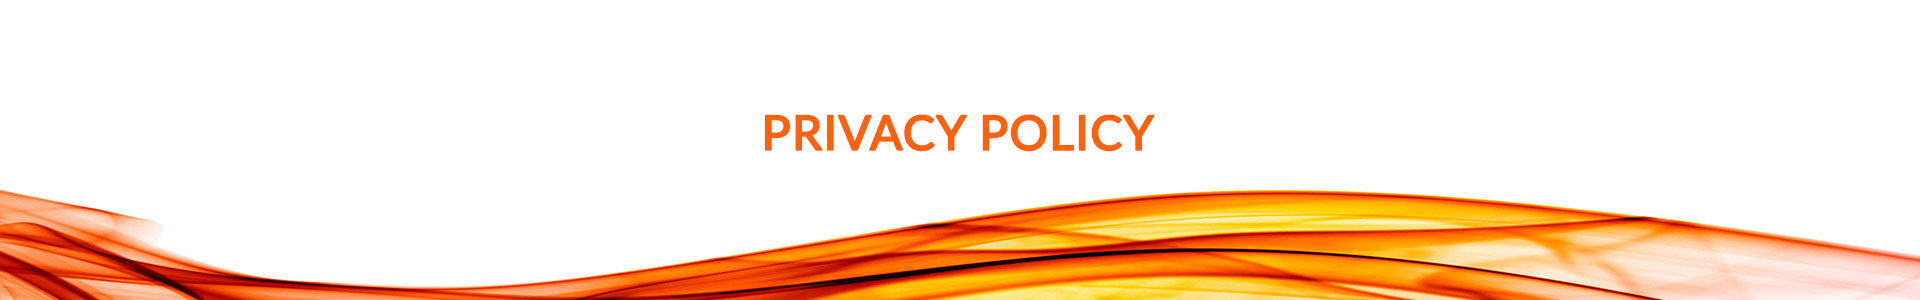 MyVapeOrder, Inc. Privacy Policy